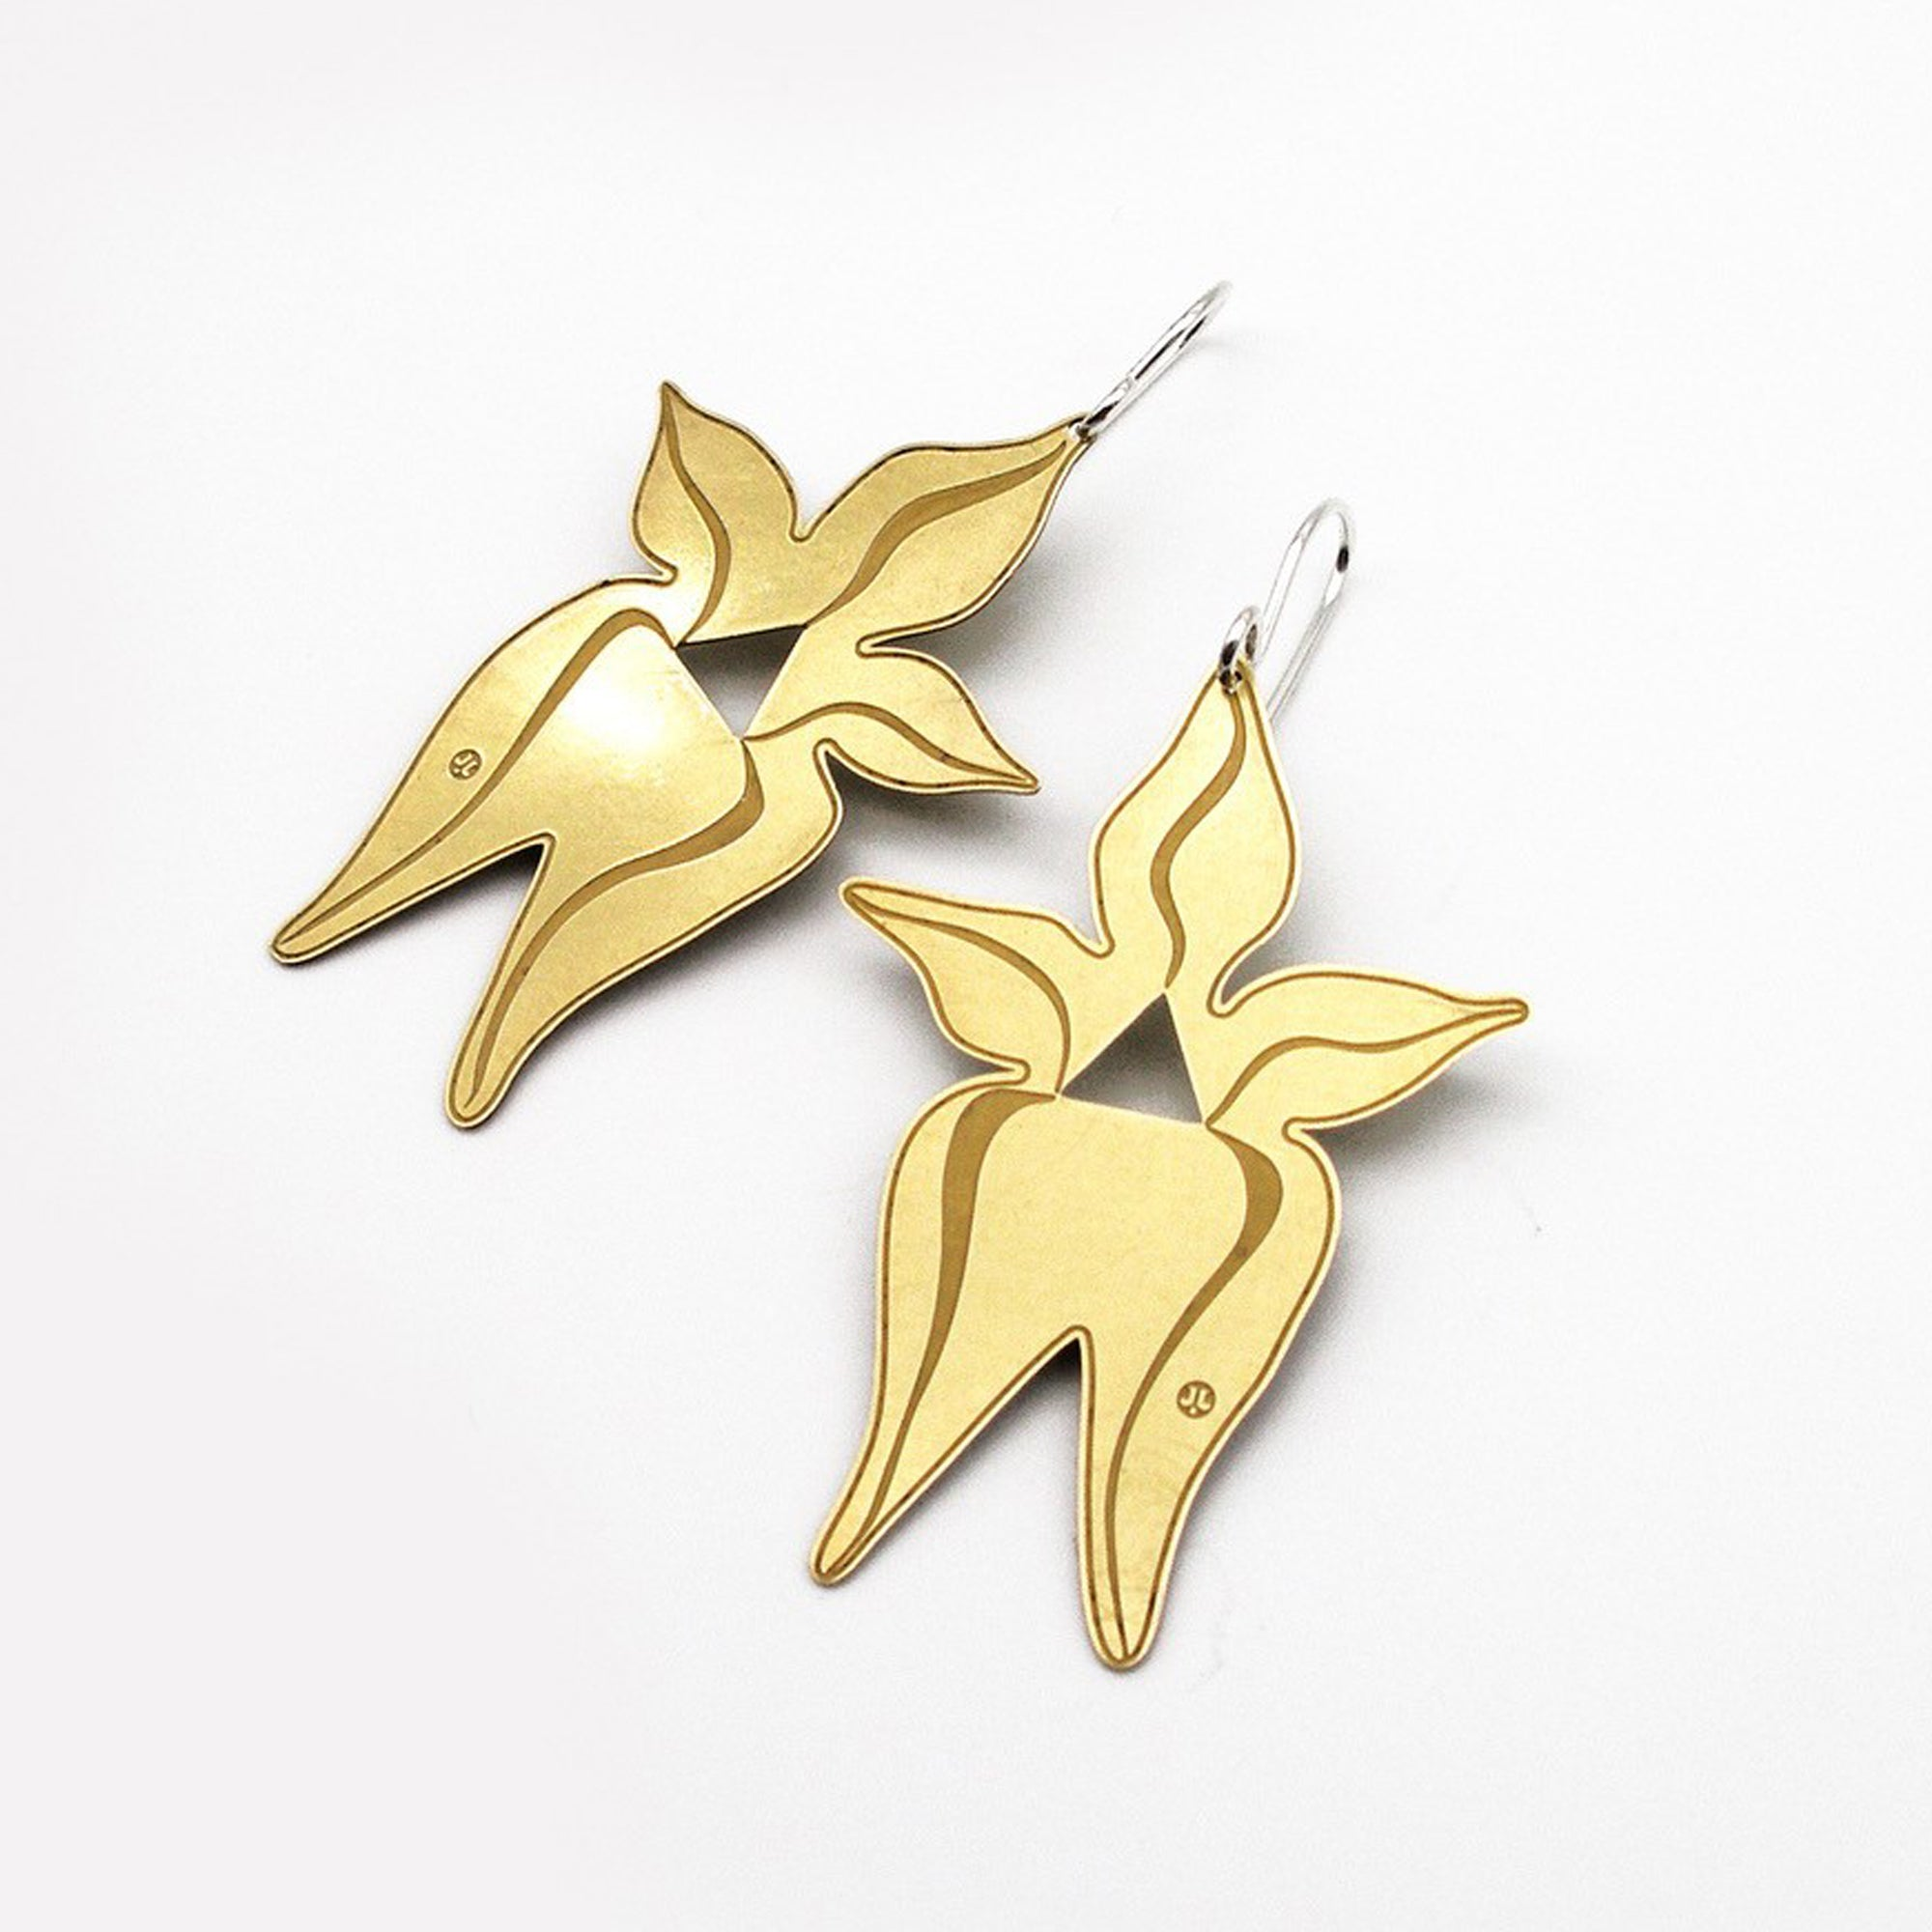 Jessica Jubb -  'Cowslip' Etched Brass Earrings with Sterling Silver Hooks (jju005)